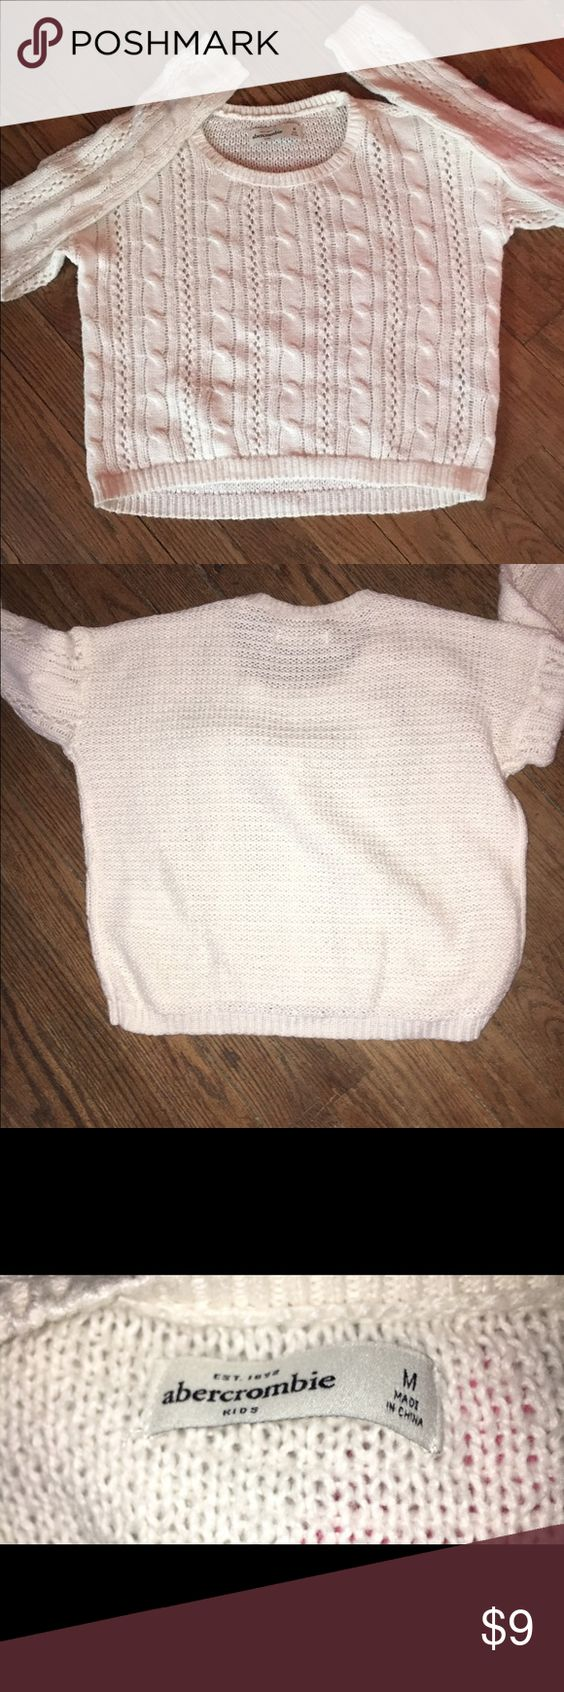 NWOT Abercrombie Kids M Cable Knit Sweater Bought from another Posher.Brand new.I didn't think it would be so short,but it's in perfect condition.Great for winter! abercrombie kids Sweaters Crew & Scoop Necks